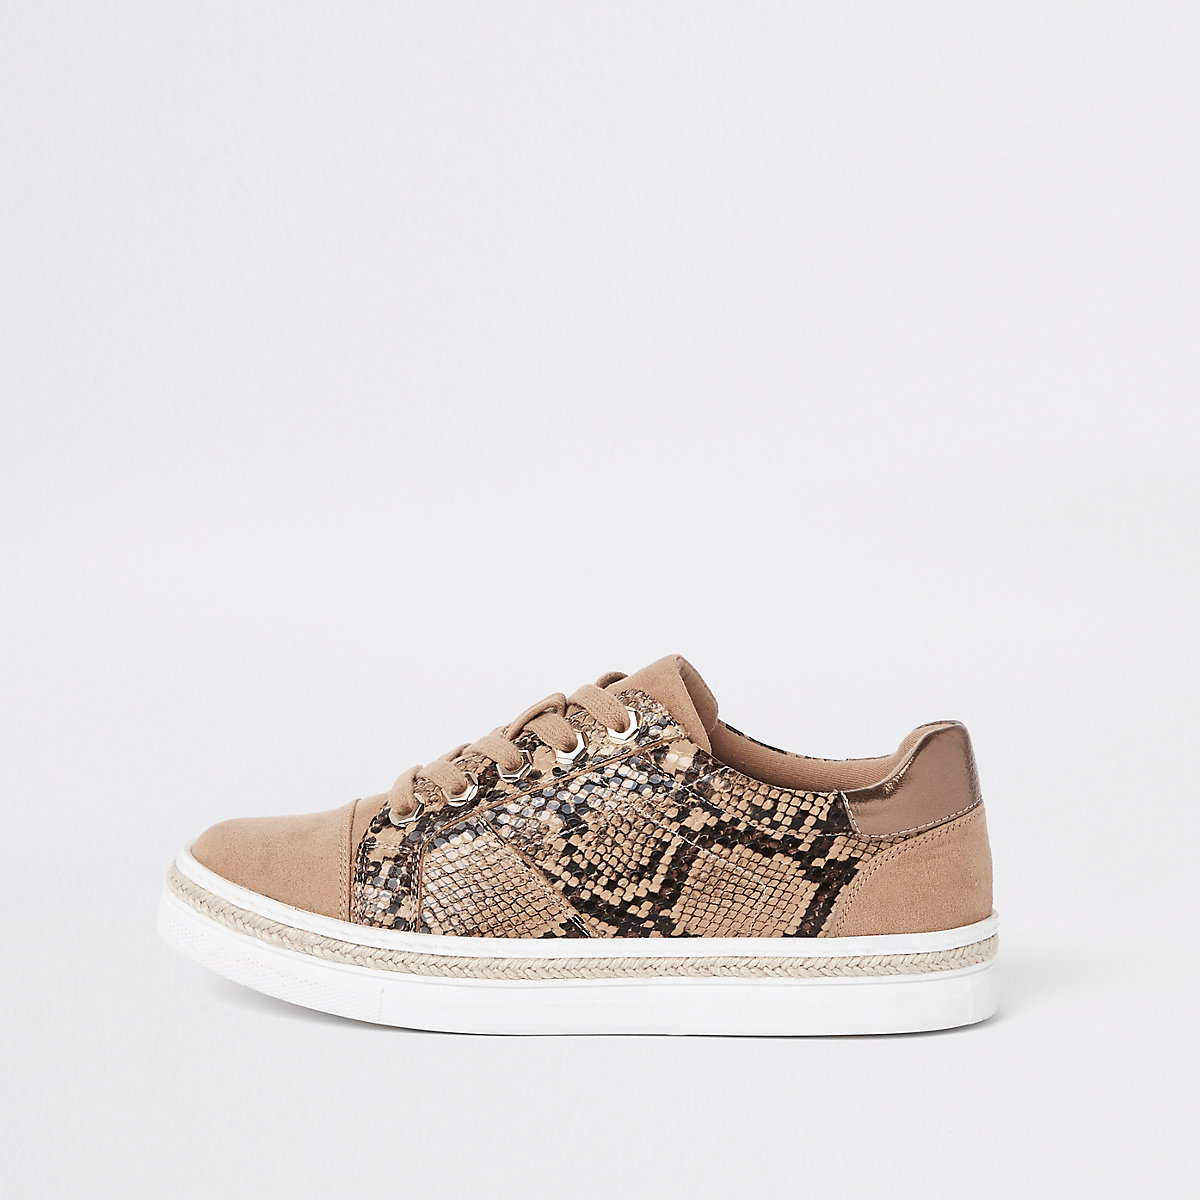 Brown snake print lace-up sneakers